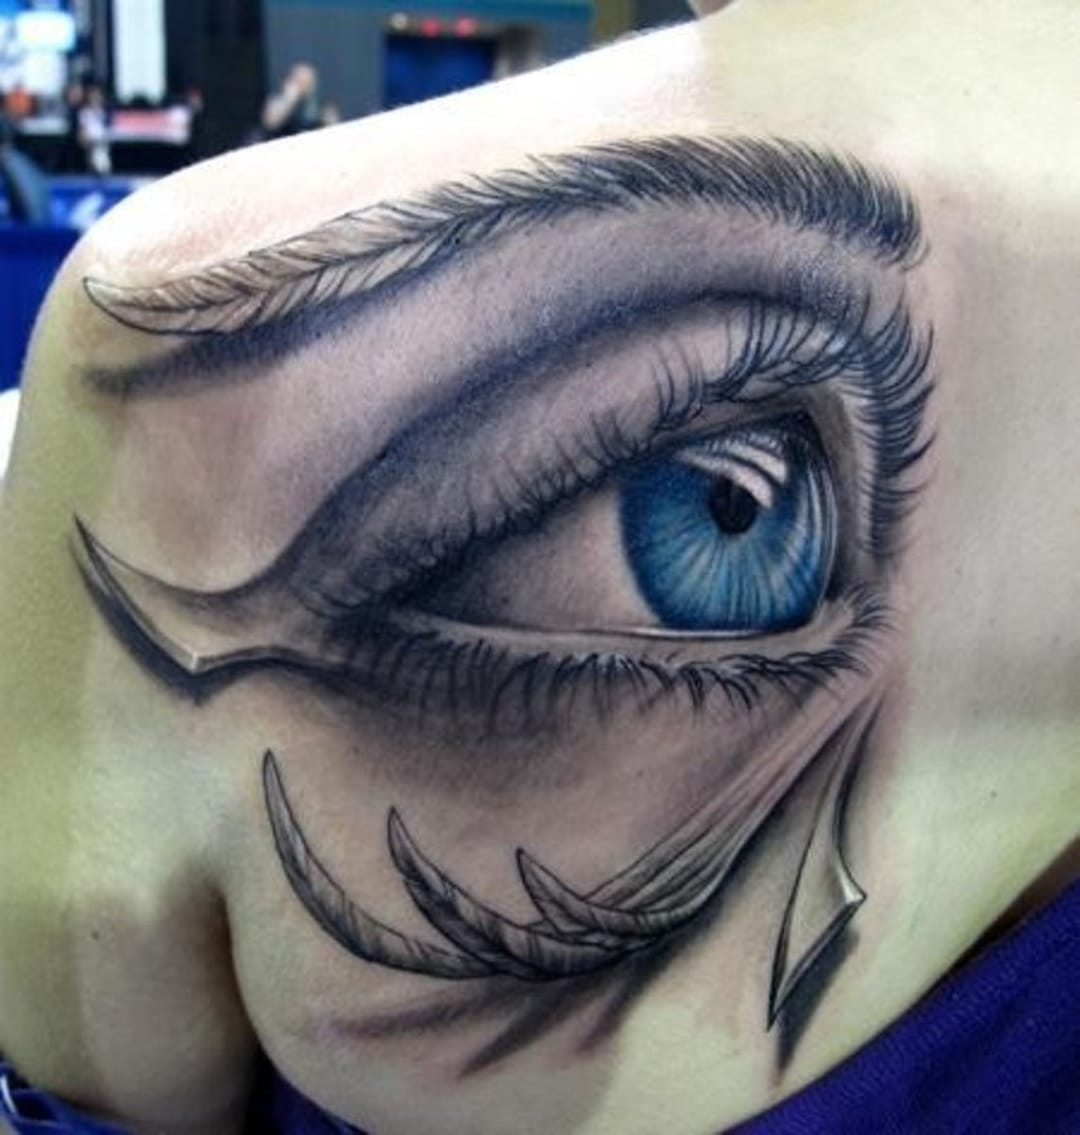 The eye of ra is a powerful protective symbol. Here in a stunning 3D realistic version by Stefano Alcantara.